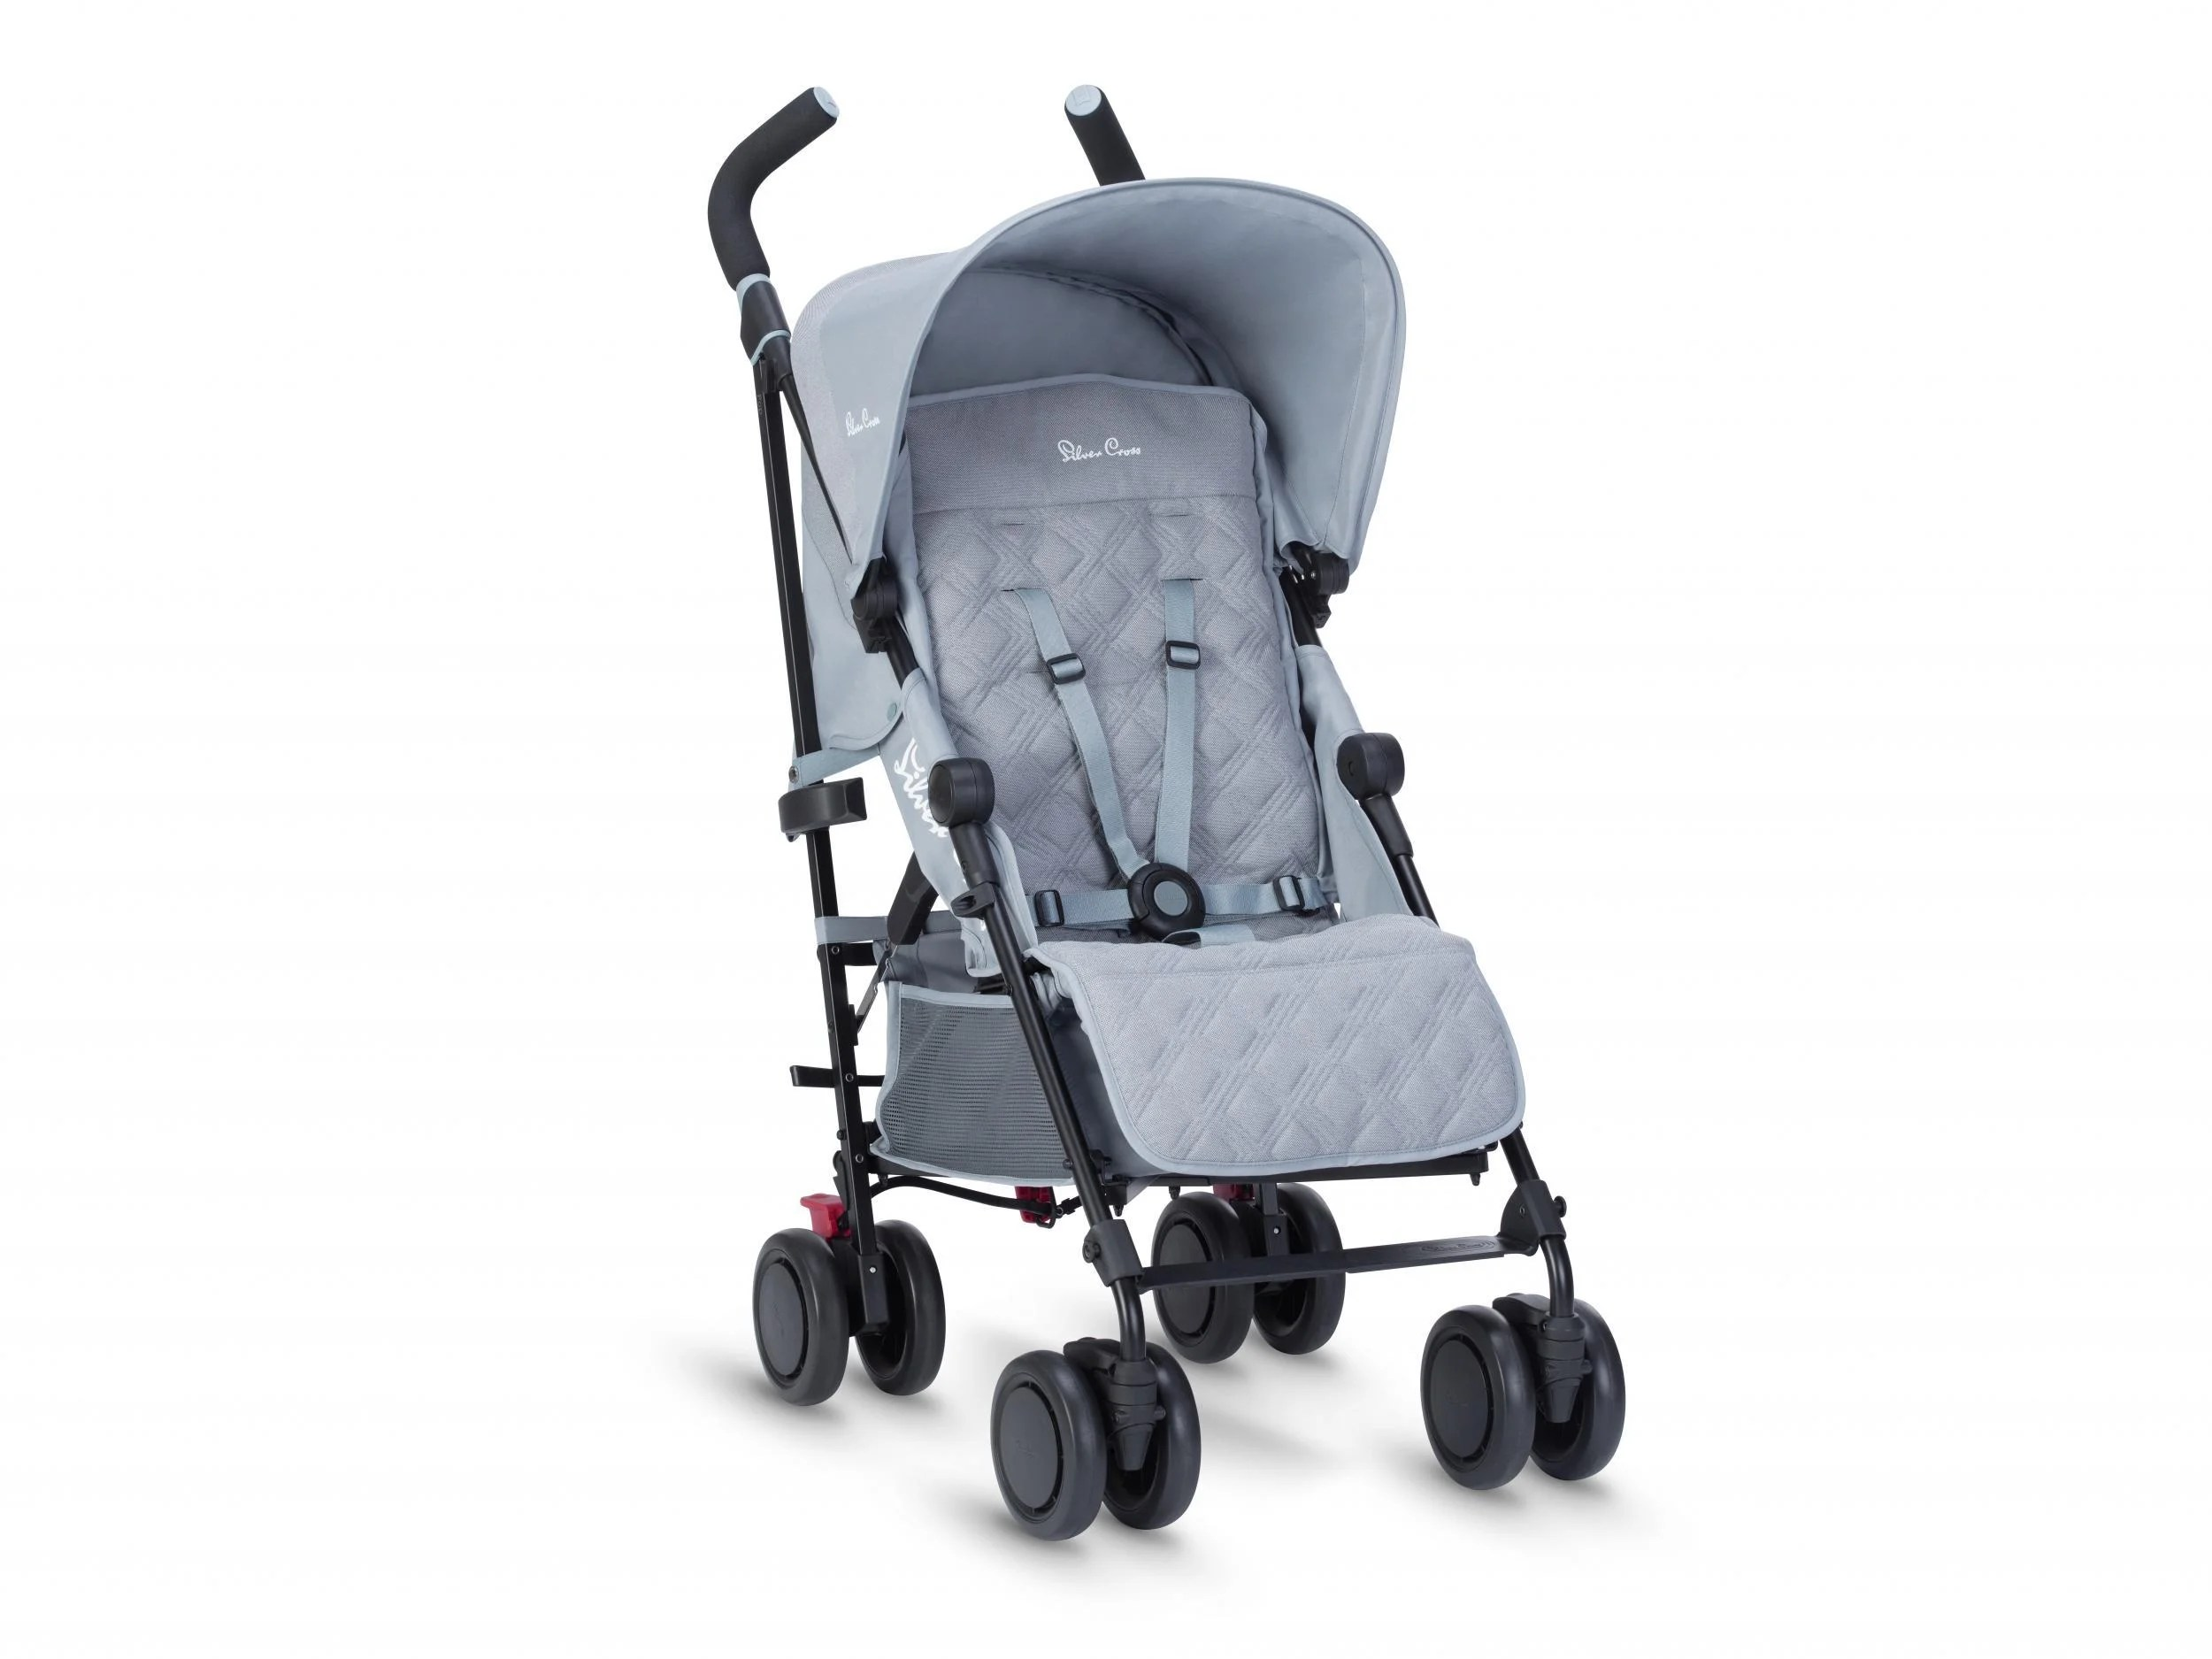 Baby Prams For Sale Uk Best Pushchairs Choose From Buggies Prams And Strollers